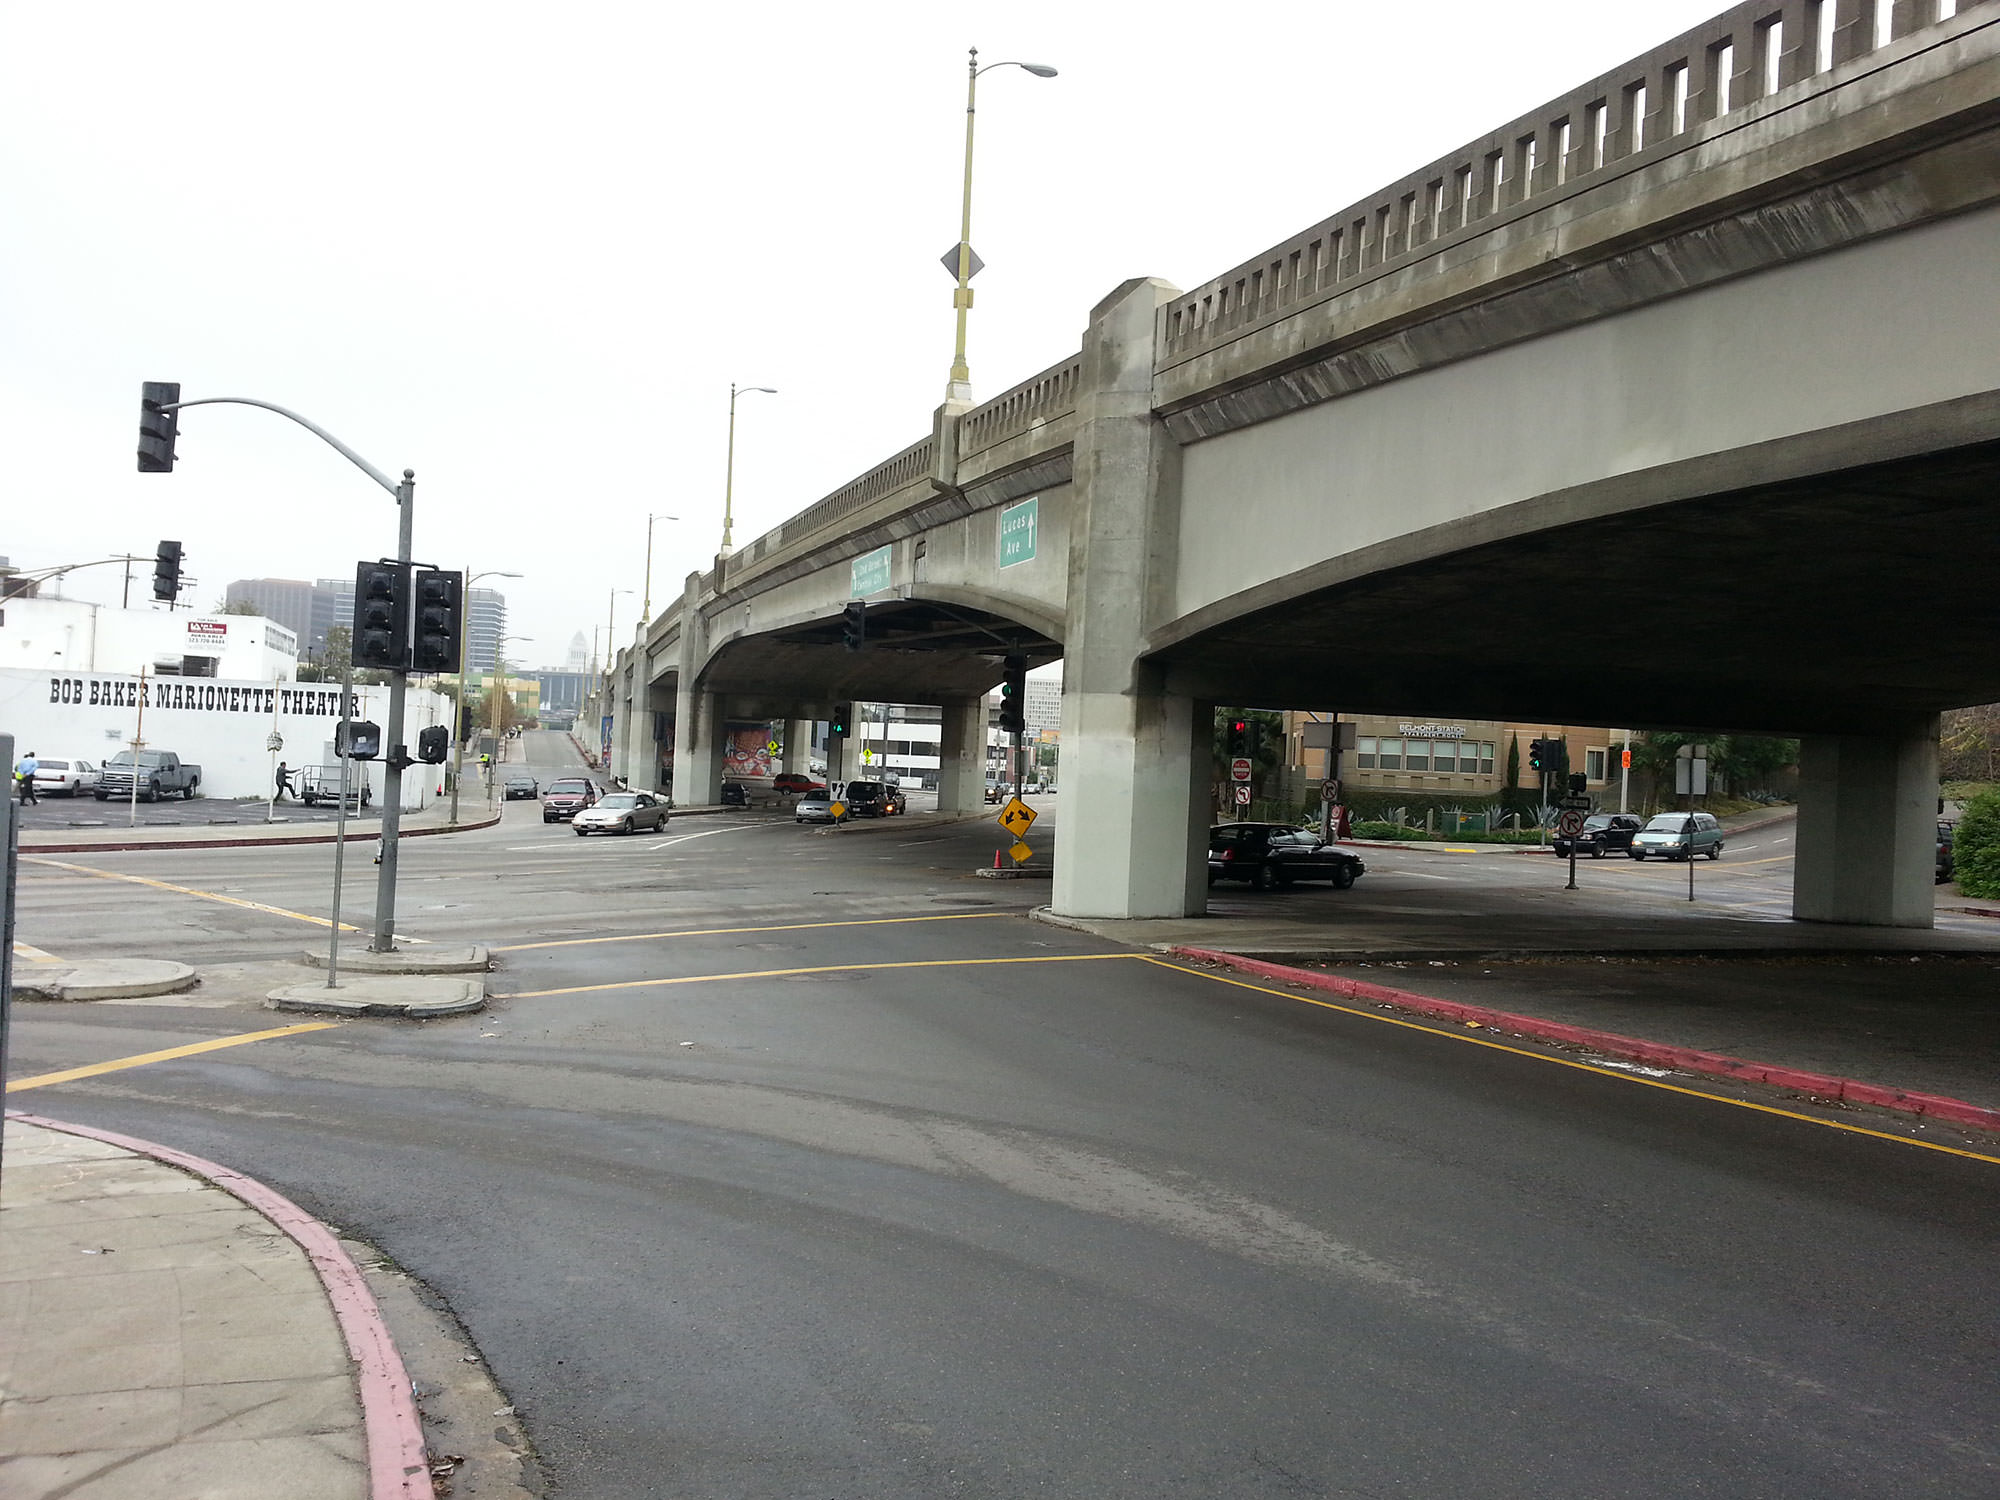 First Street over Glendale Boulevard Viaduct from below